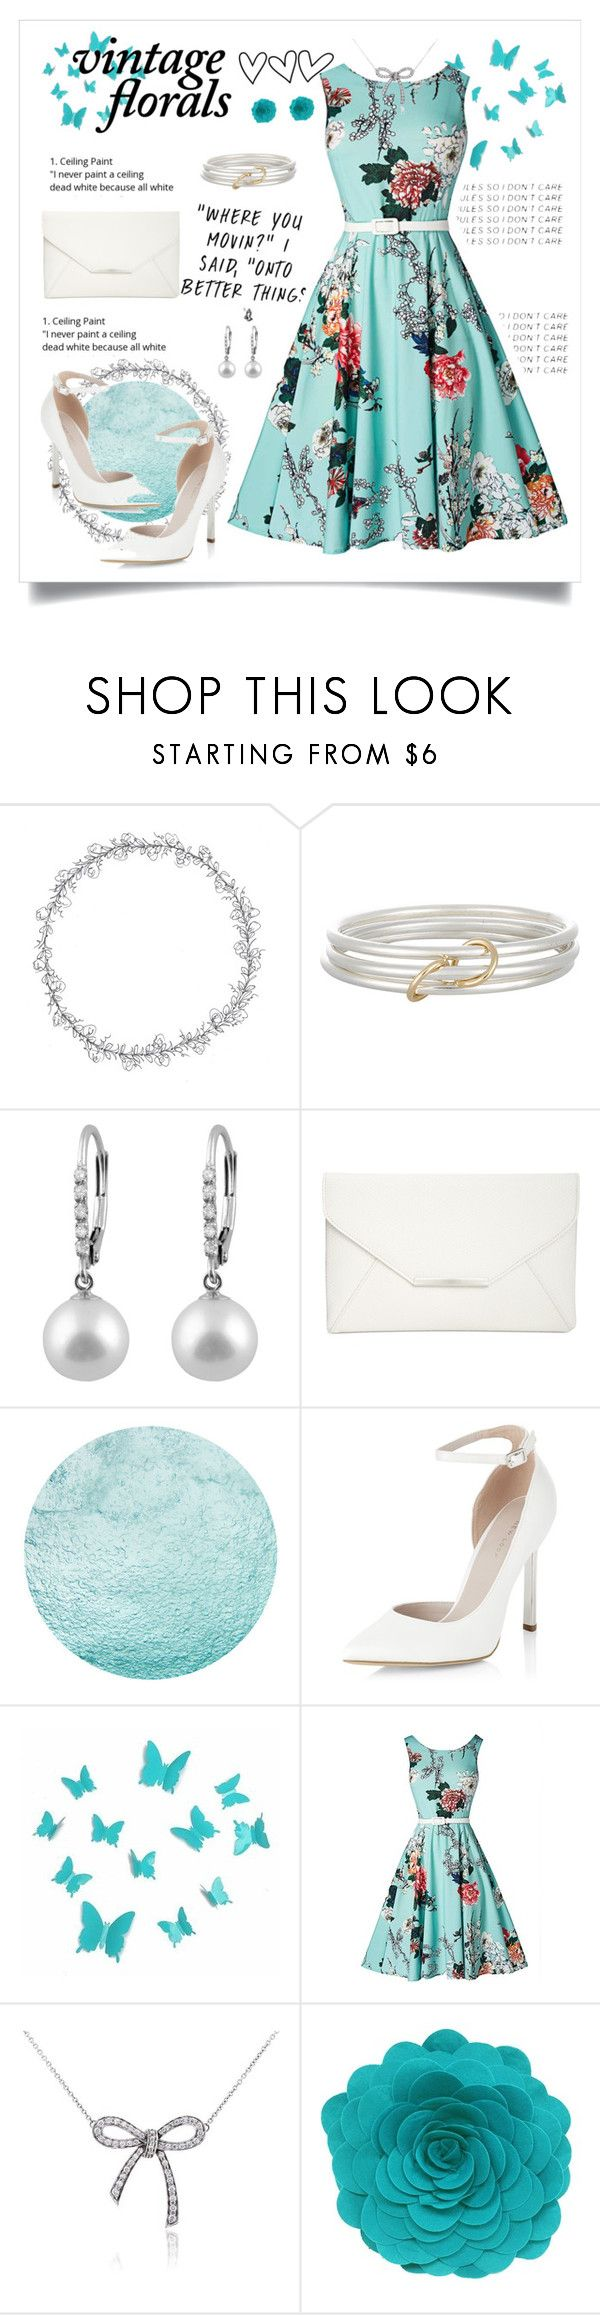 """""""Extra vintage"""" by jennifer-allison-bulnes-apolo ❤ liked on Polyvore featuring SPINELLI KILCOLLIN, Style & Co., New Look, Tiffany & Co. and vintage"""